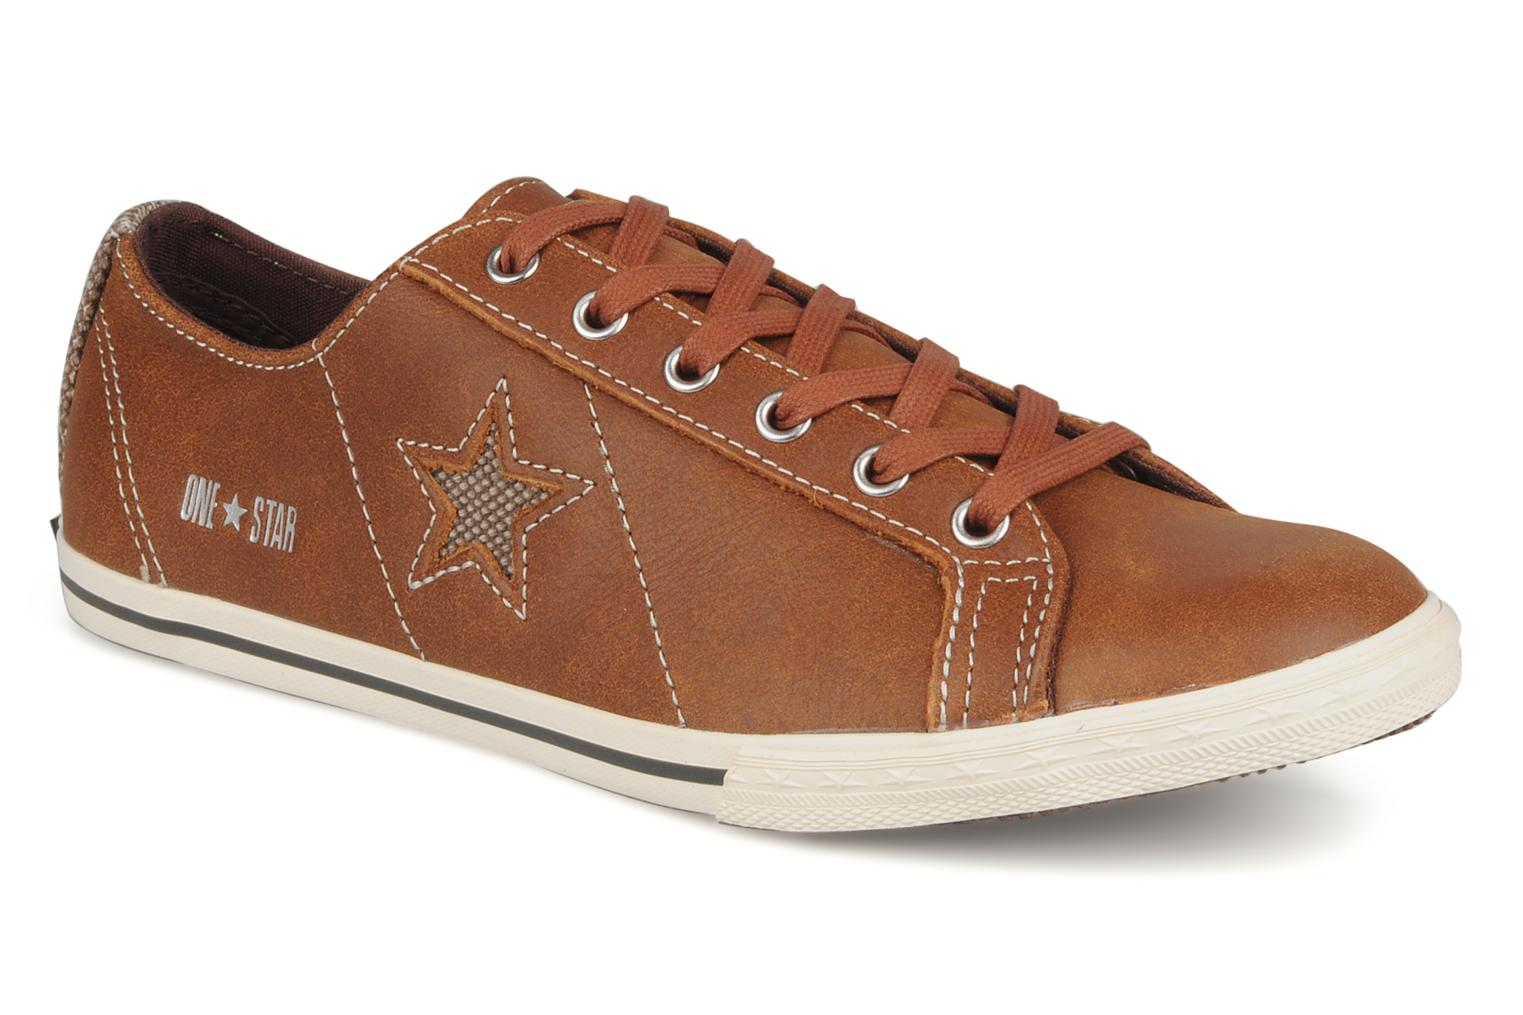 converse one star low profile ox,Converse One Star Low